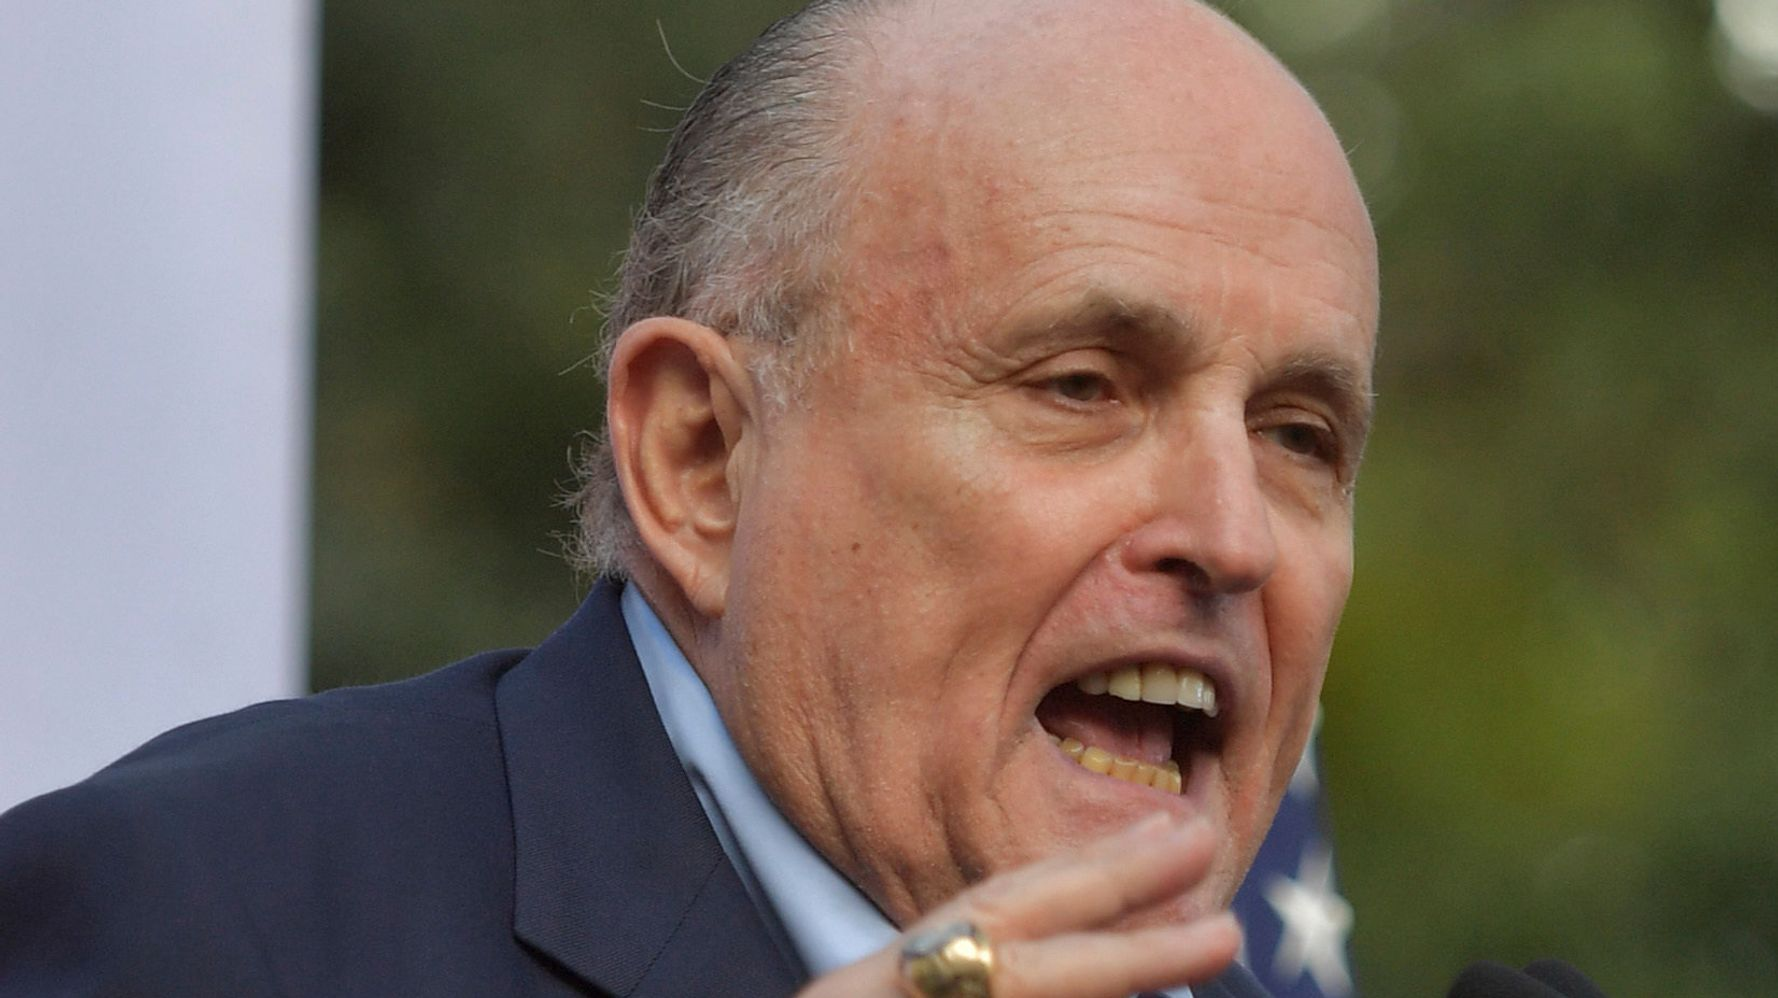 Westlake Legal Group 5d8f11ed2100003700fcb92b Giuliani Says He Won't Testify Before House Without Trump's OK